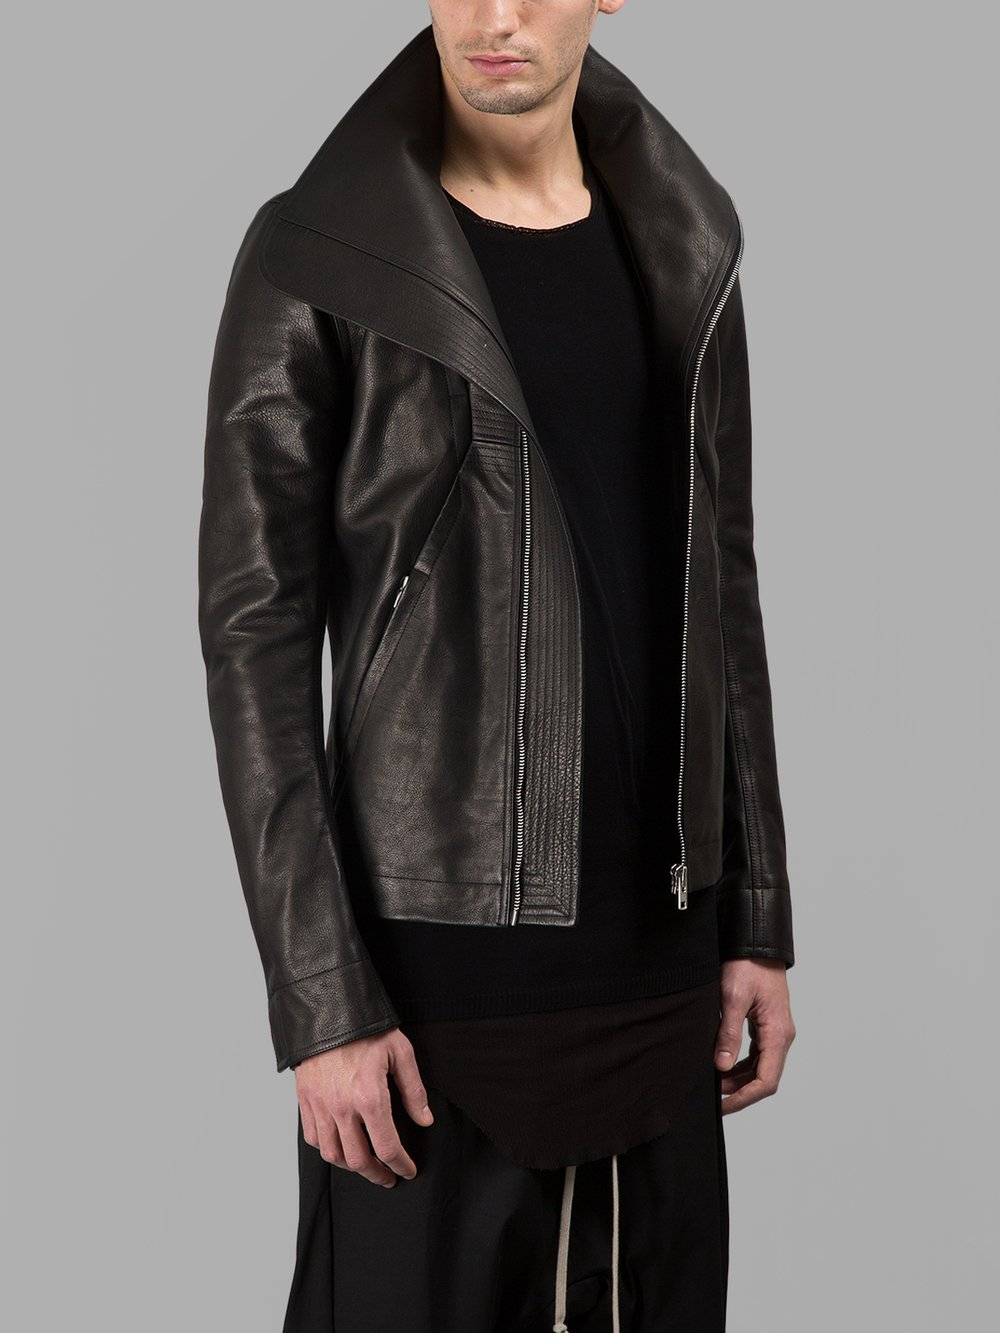 Rick Owens - Leather Jackets - Antonioli.eu